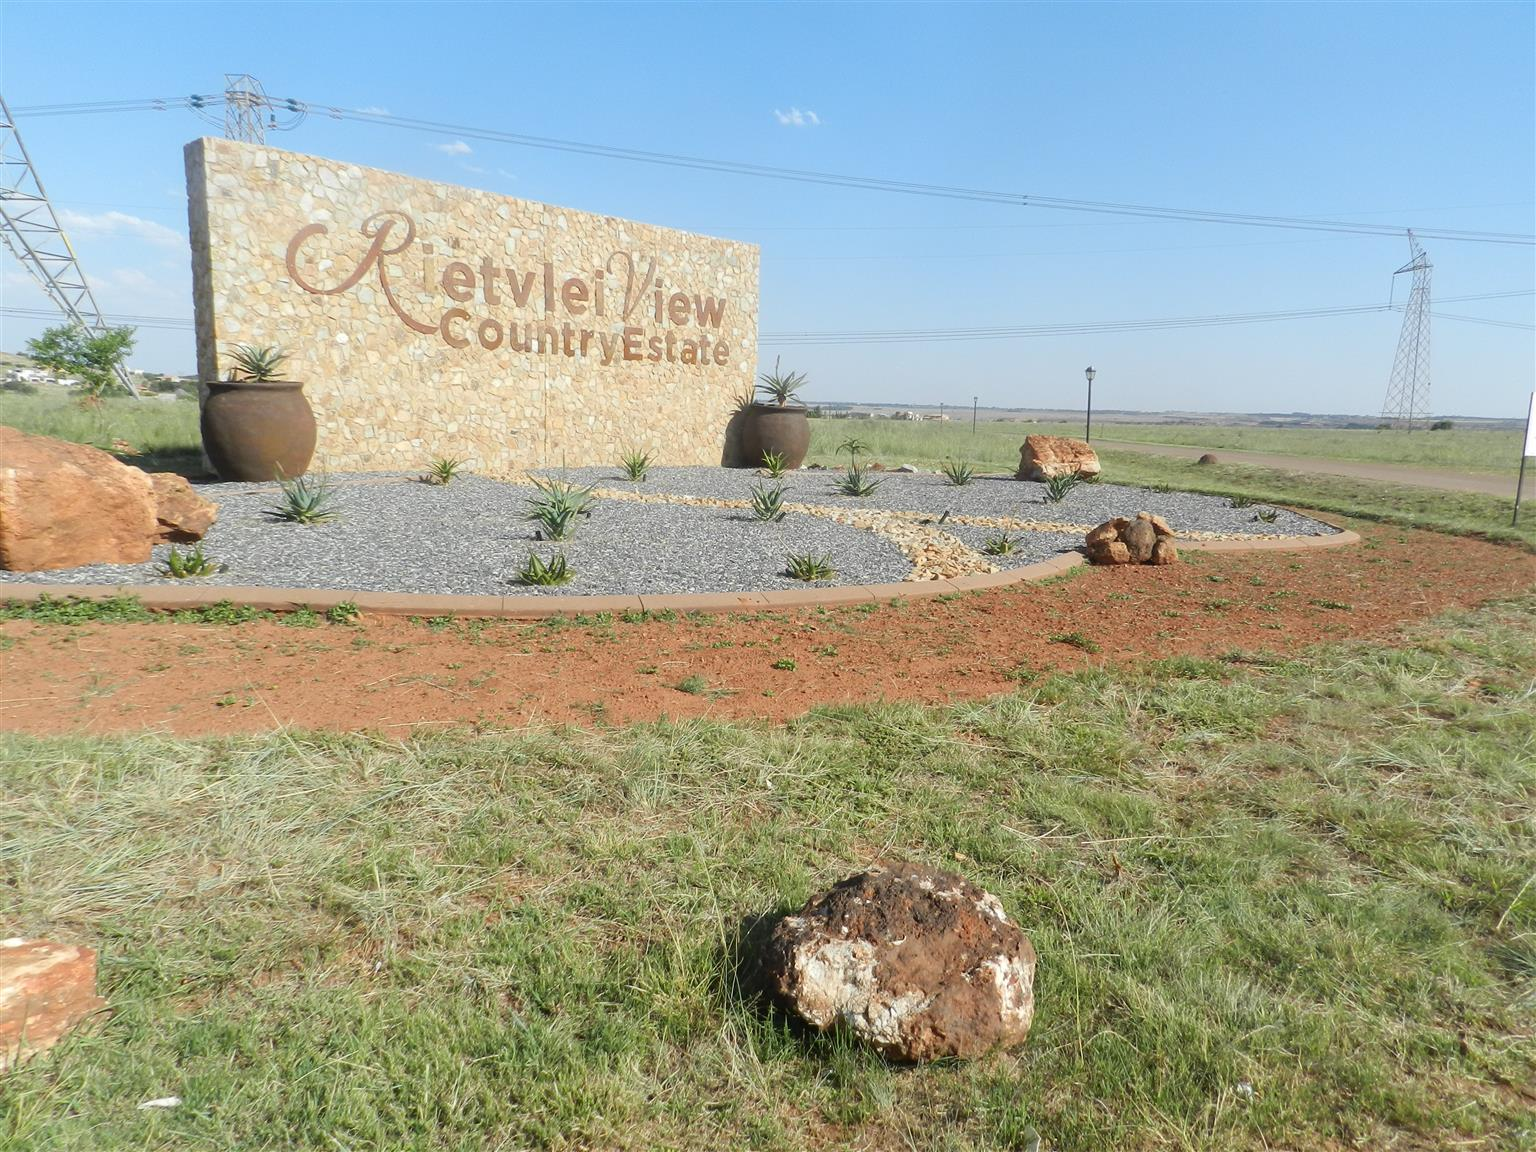 1 Hectare Vacant Stand in Rietvlei View Country Estate